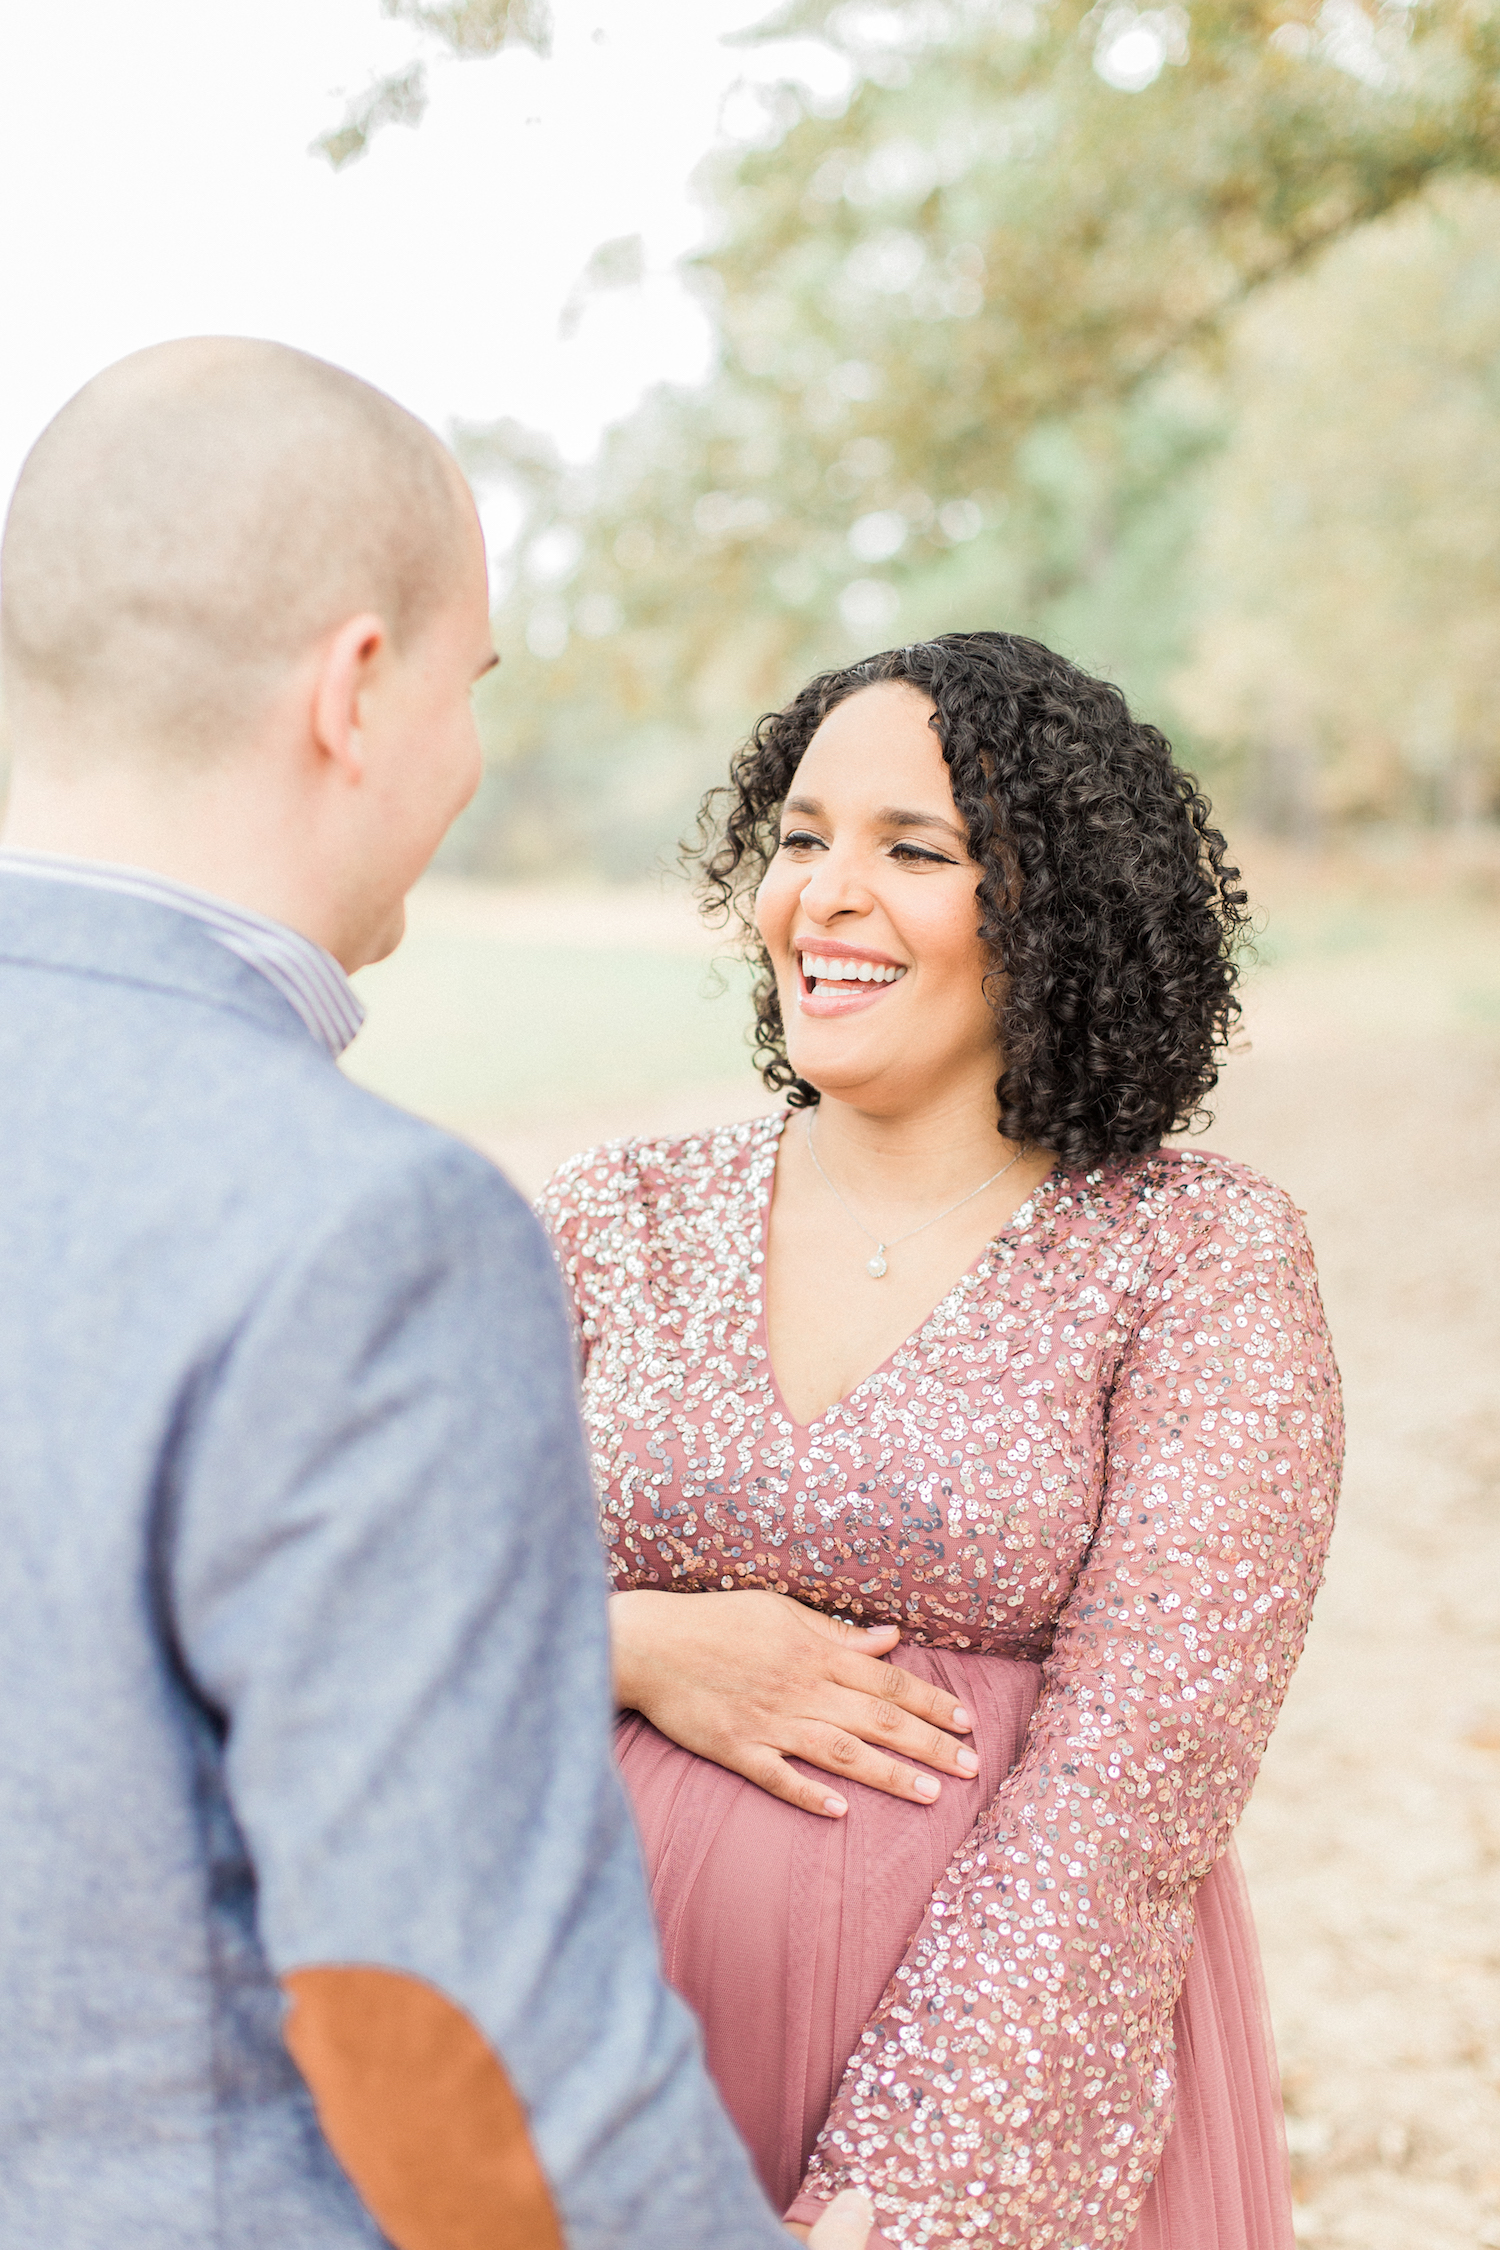 Joy filled maternity session with laughter. Romantic organic nature filled. Atlanta Fine Art Maternity Photographer.